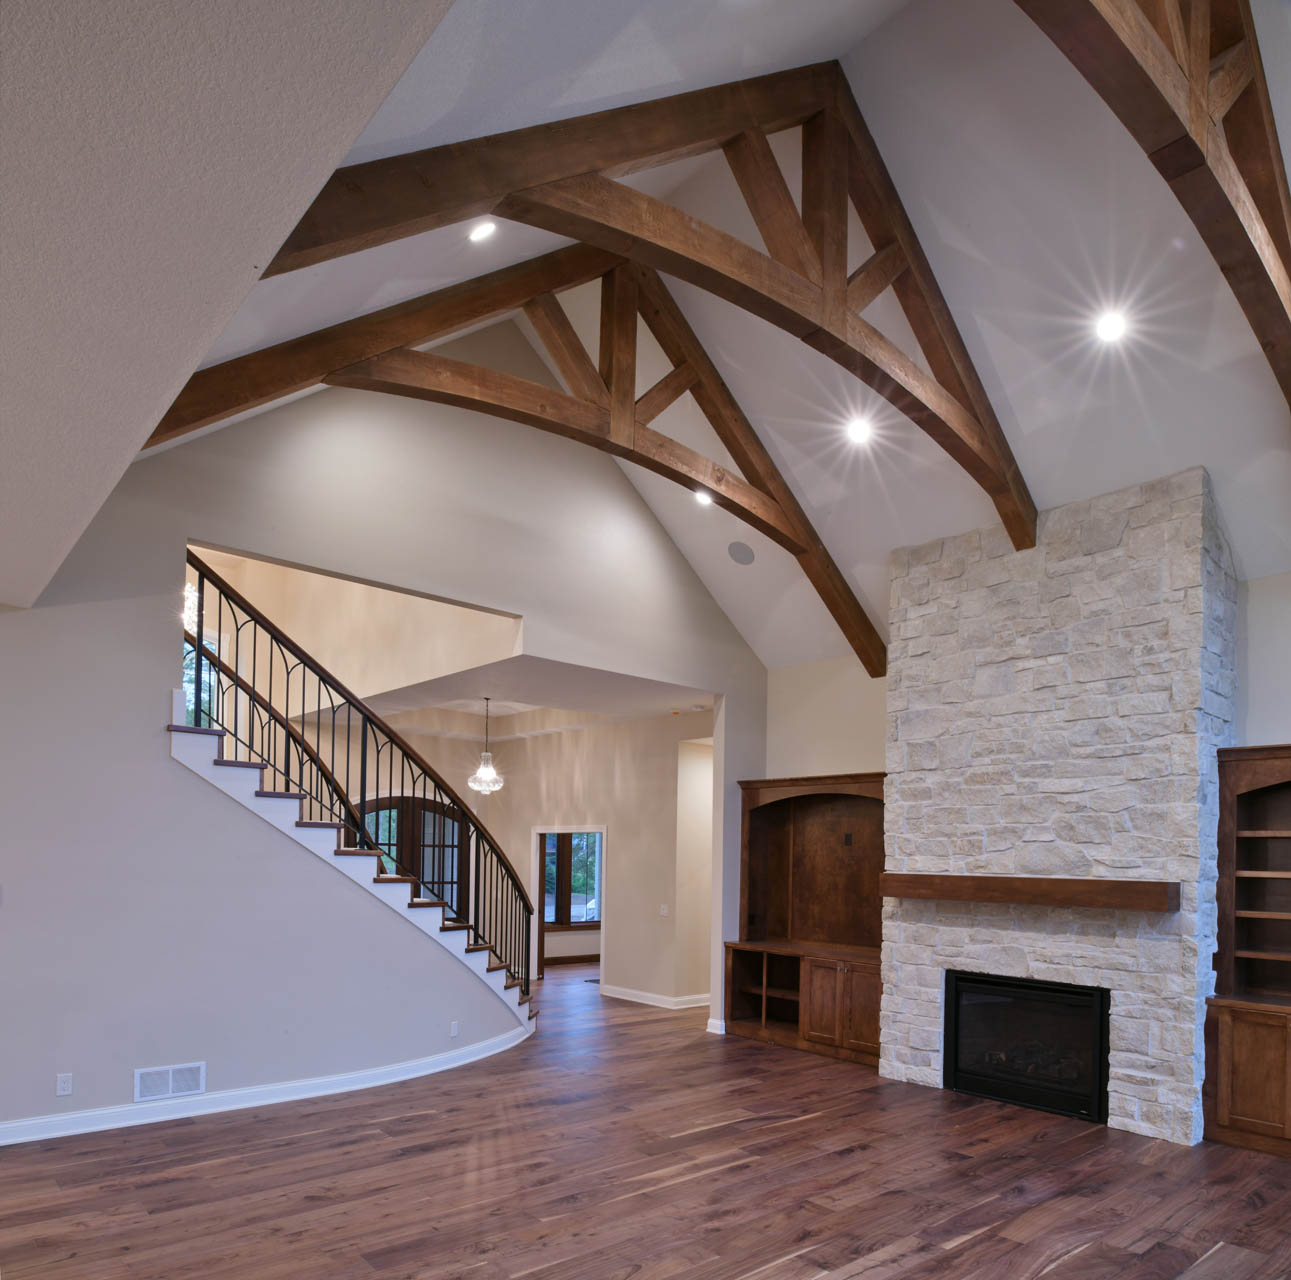 Amazing Ceilings and Fireplaces